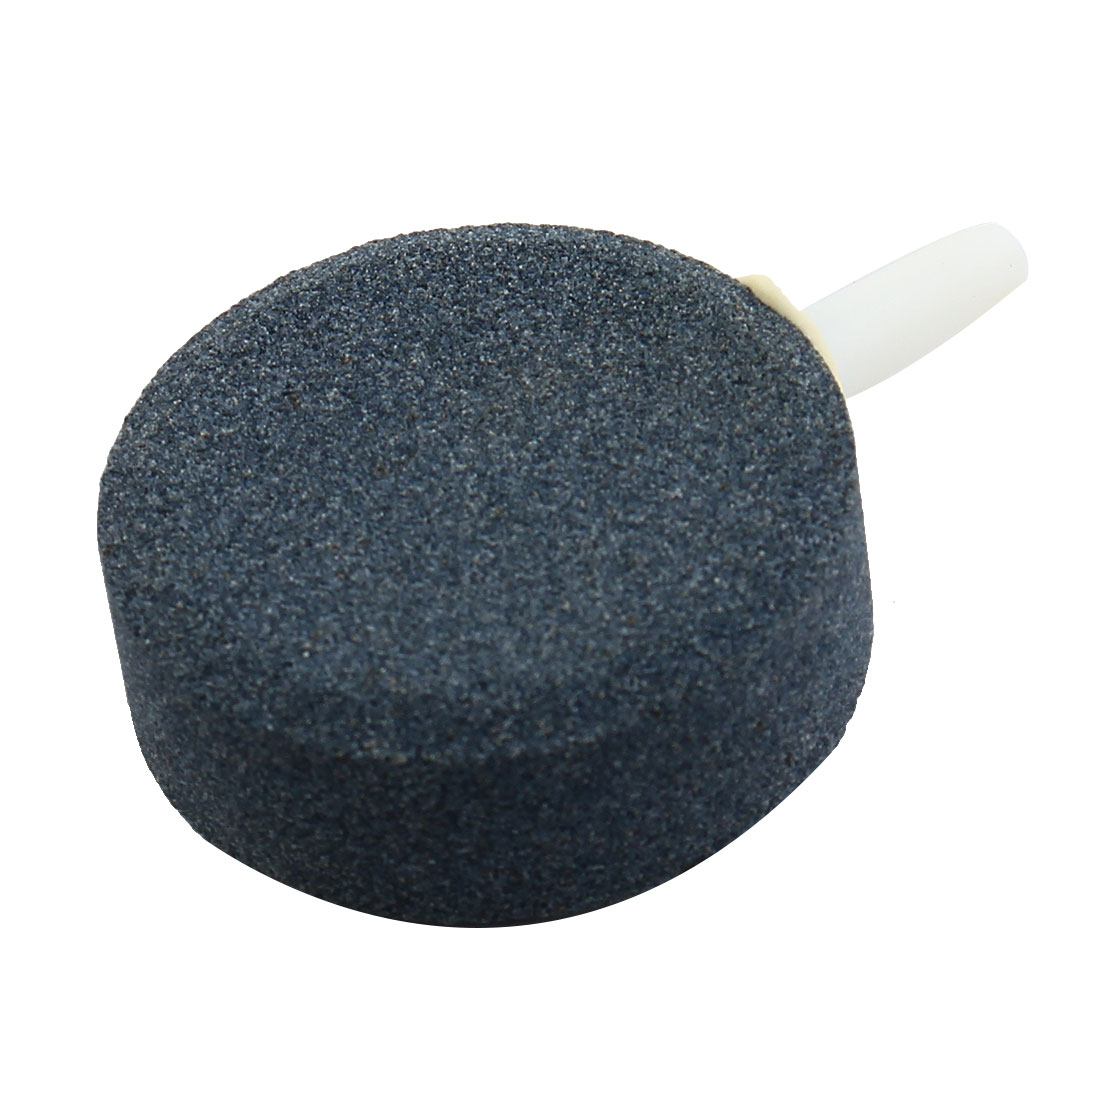 Aquarium Fish Tank Ponds Ceramic Bubble Disk Air Stone Diffusers 40mm x 15mm